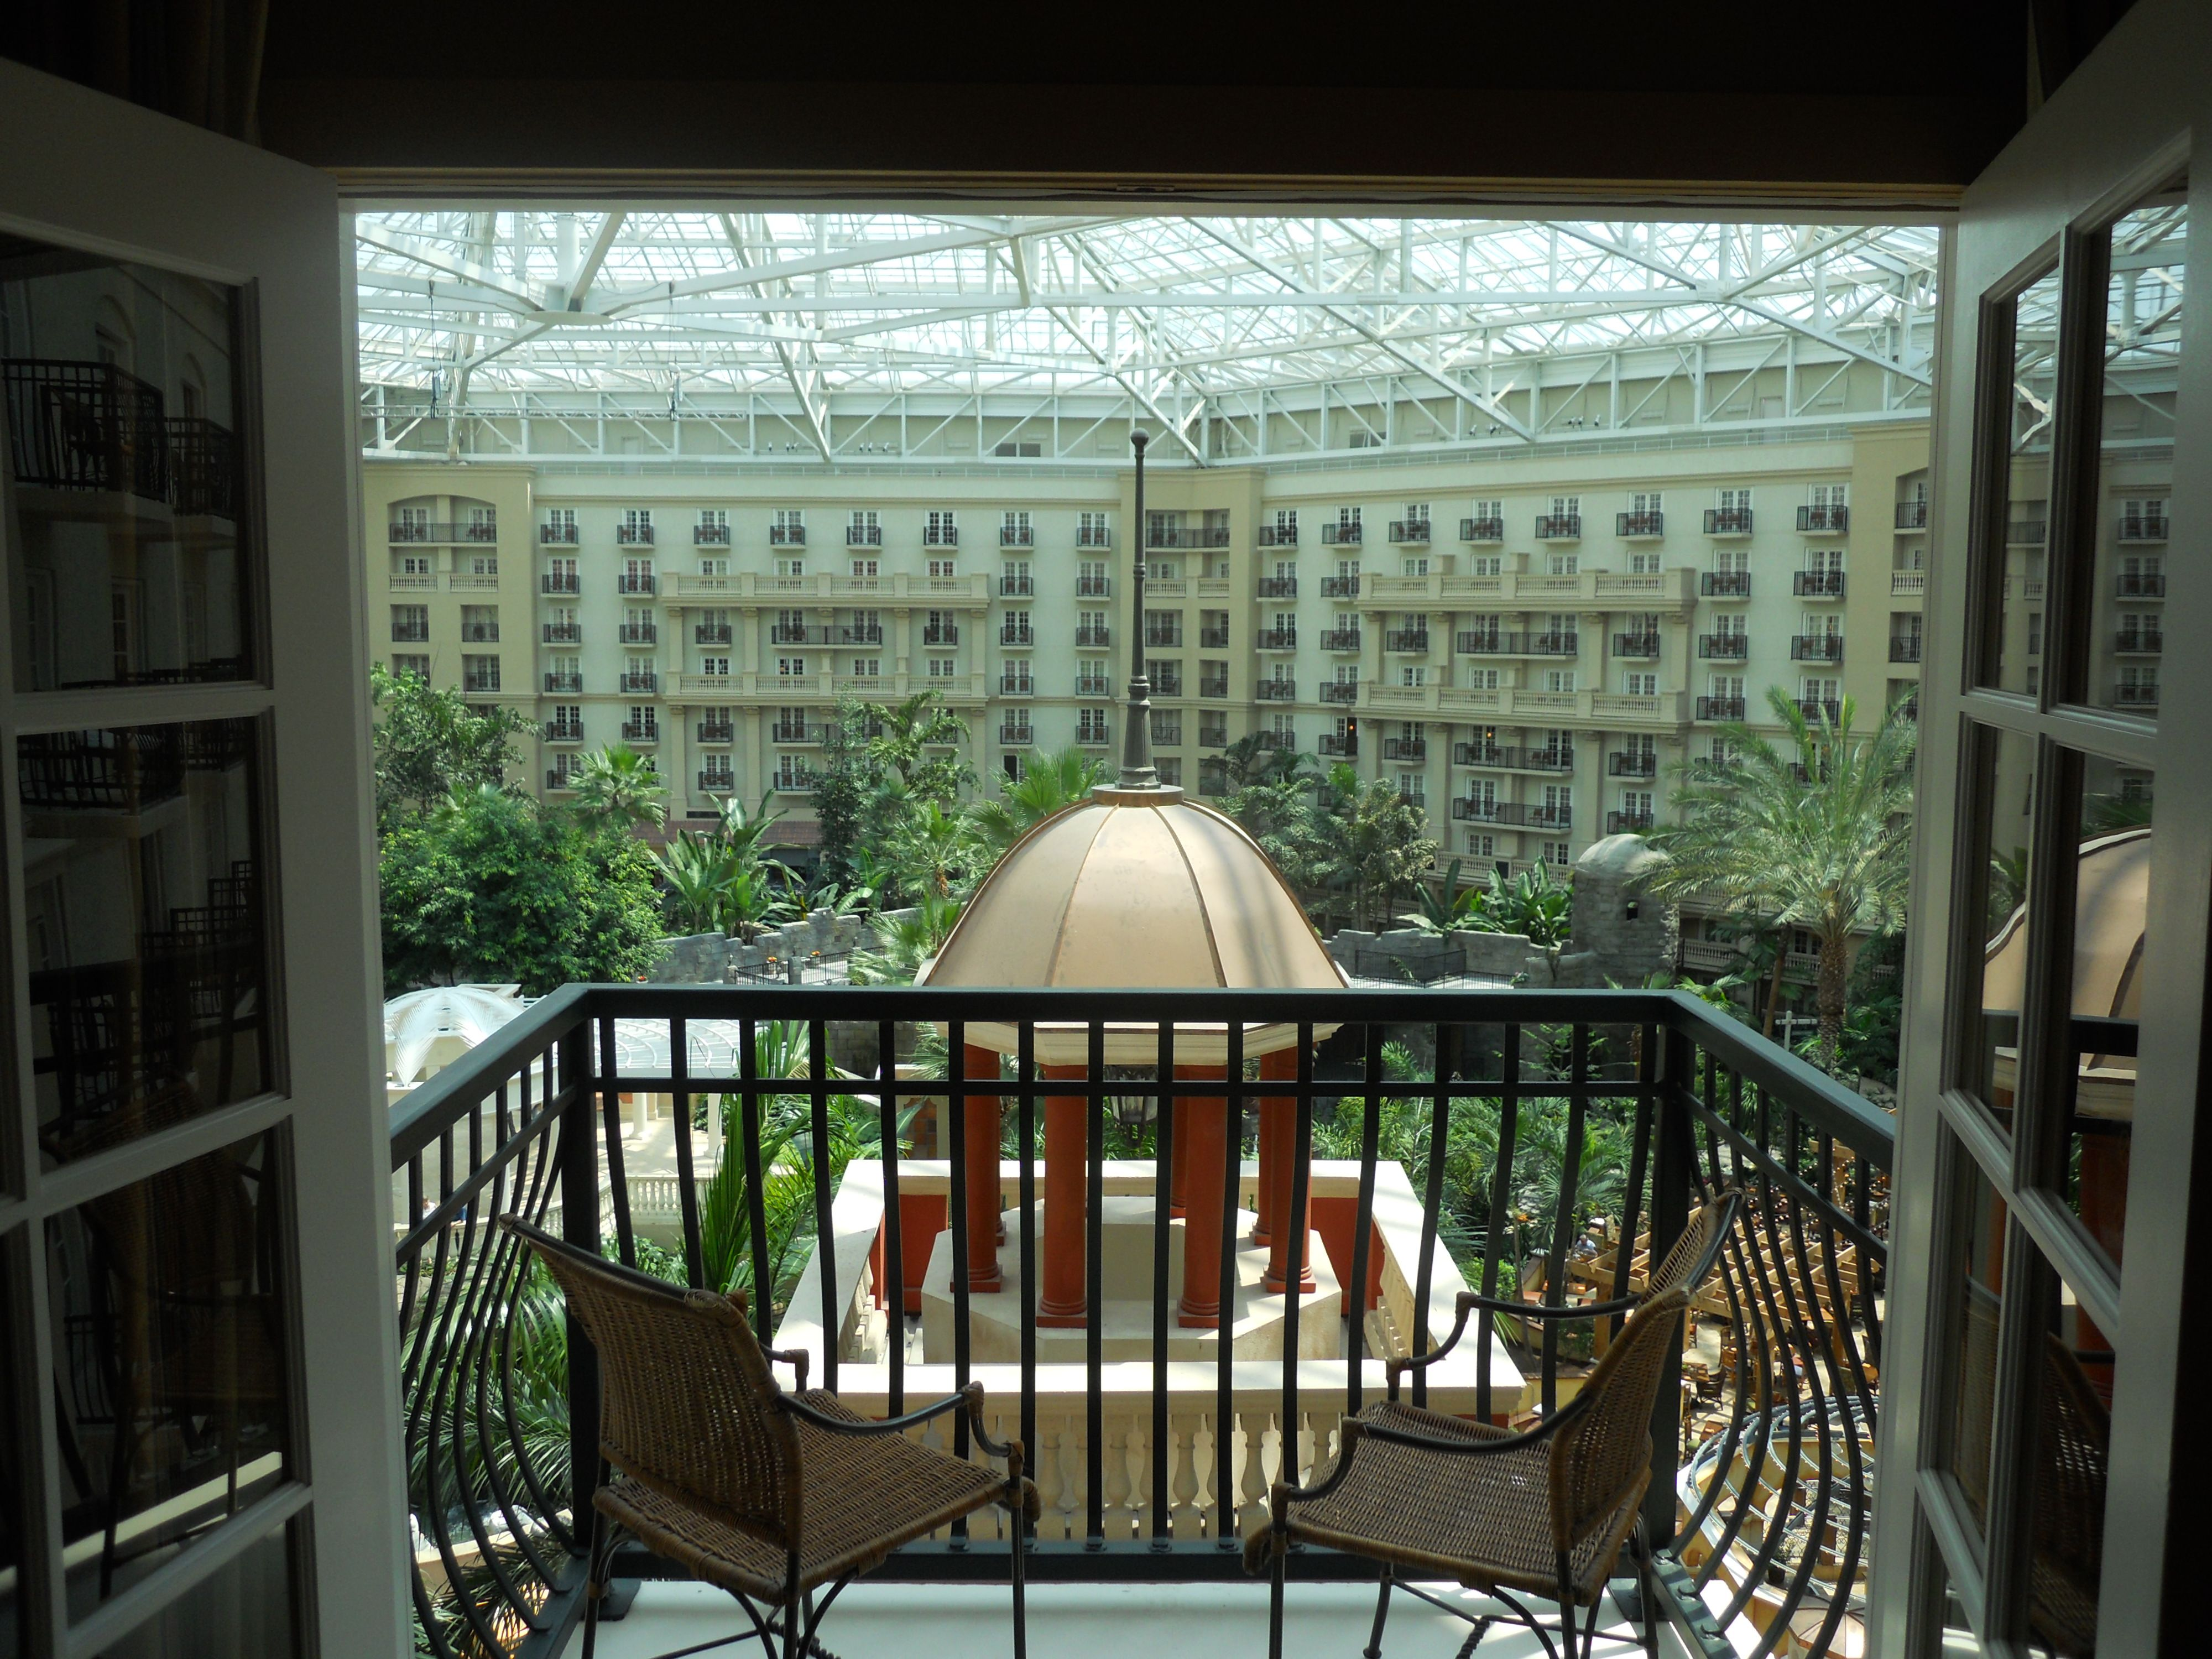 View from a guest room into the main atrium at Gaylord Palms Hotel ...